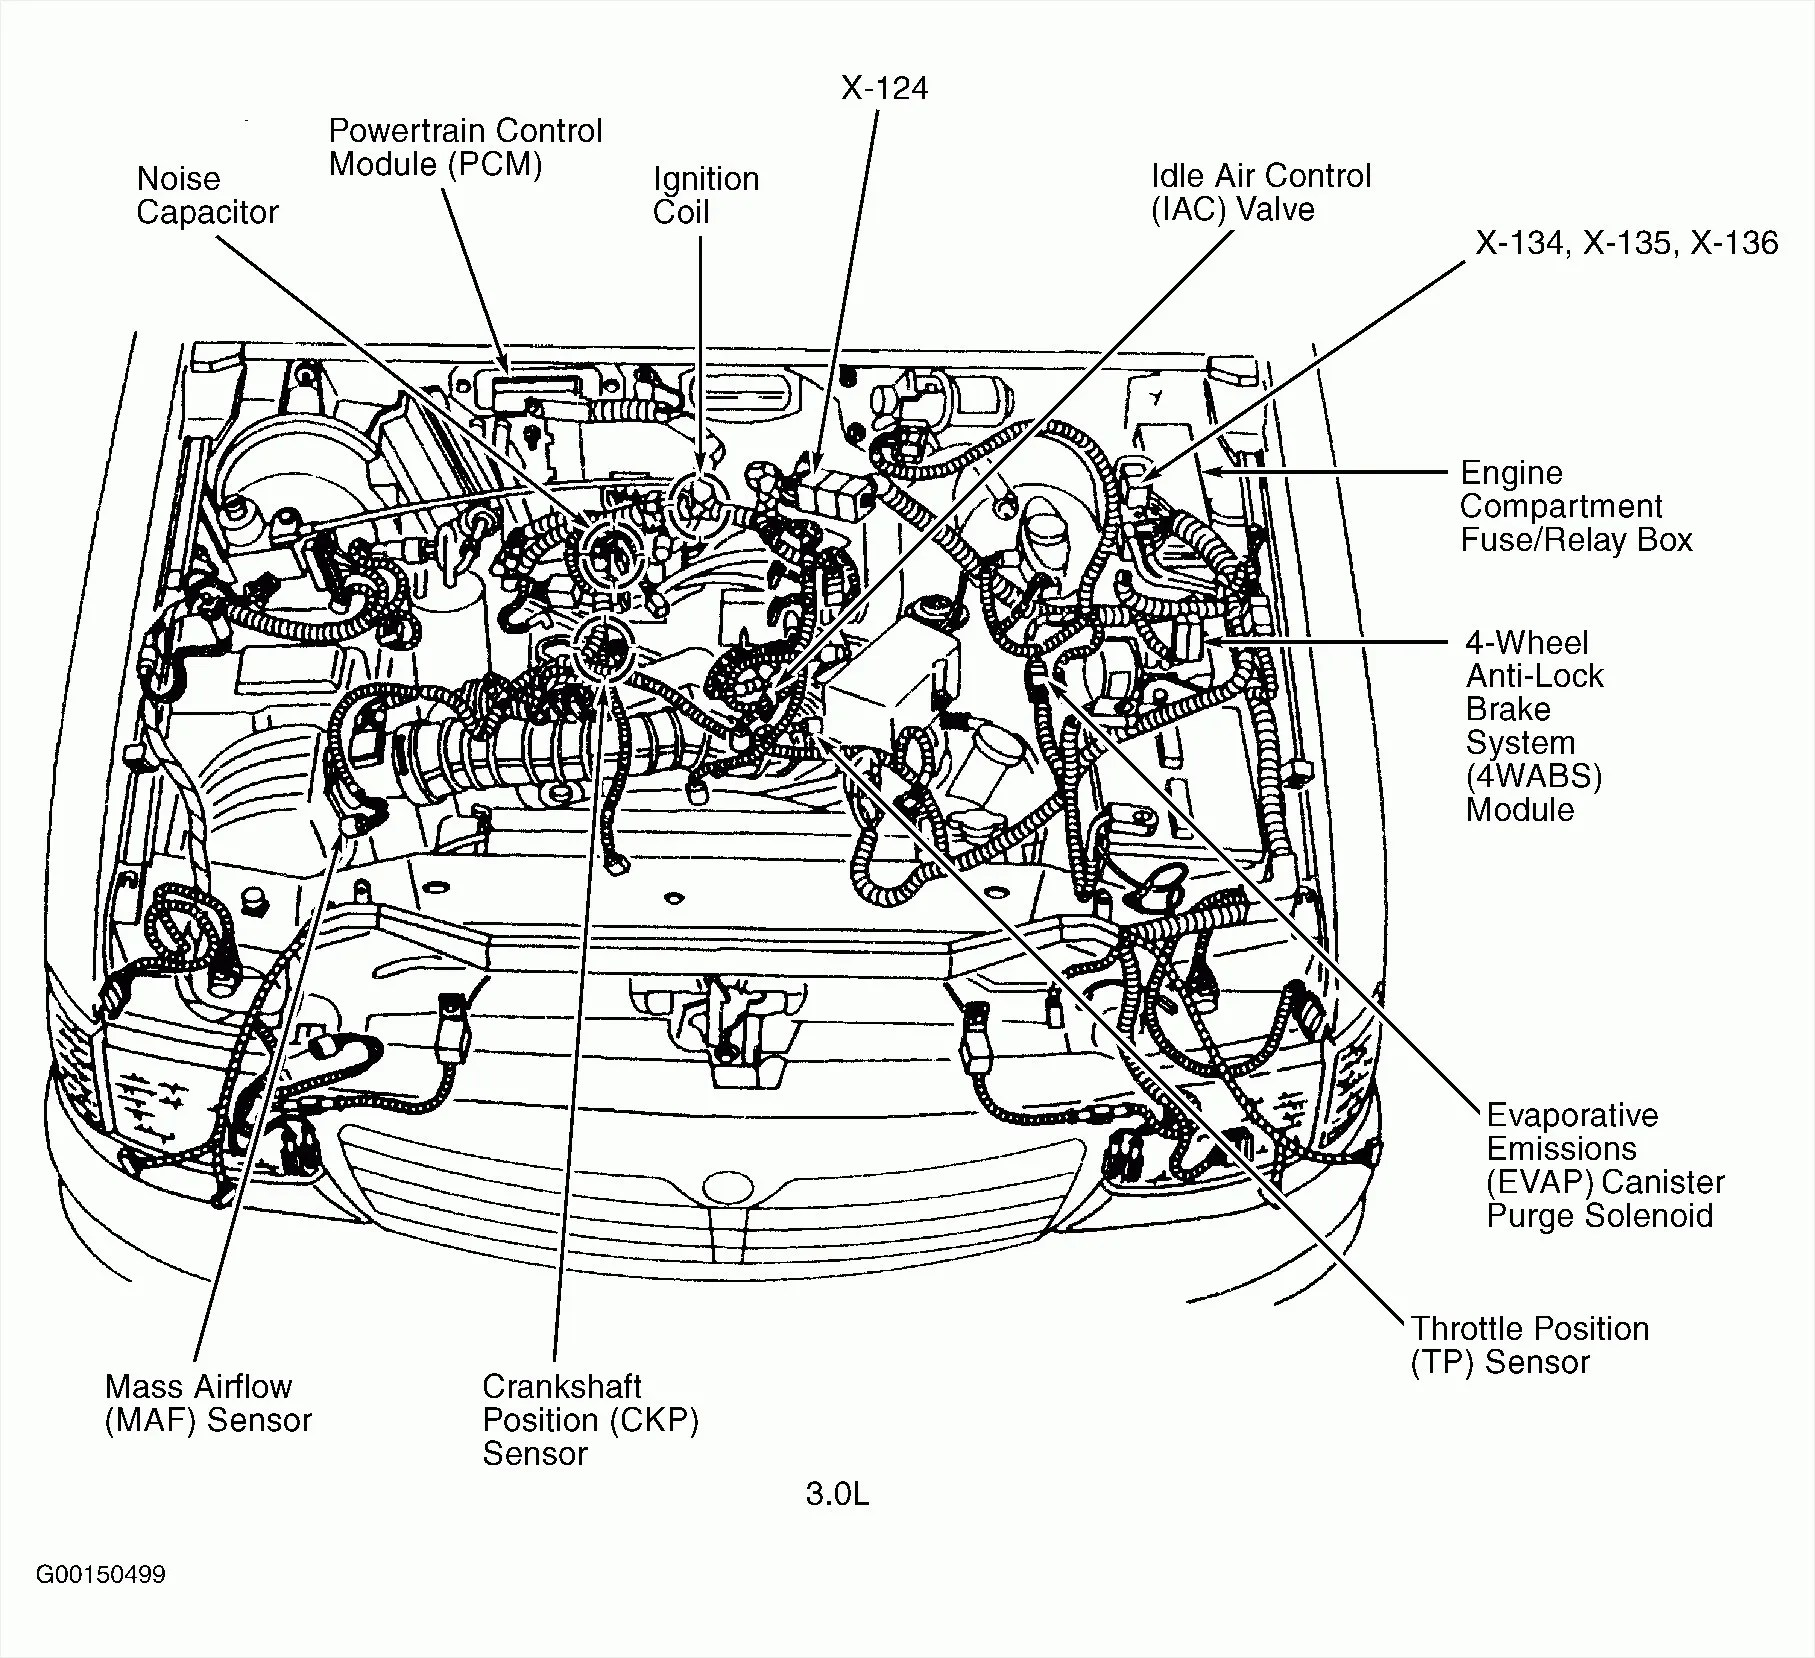 hight resolution of system diagram 2004 jaguar x type v6 engine 2004 corvette belt jaguar x type 2 0 diesel engine diagram jaguar x type engine diagram